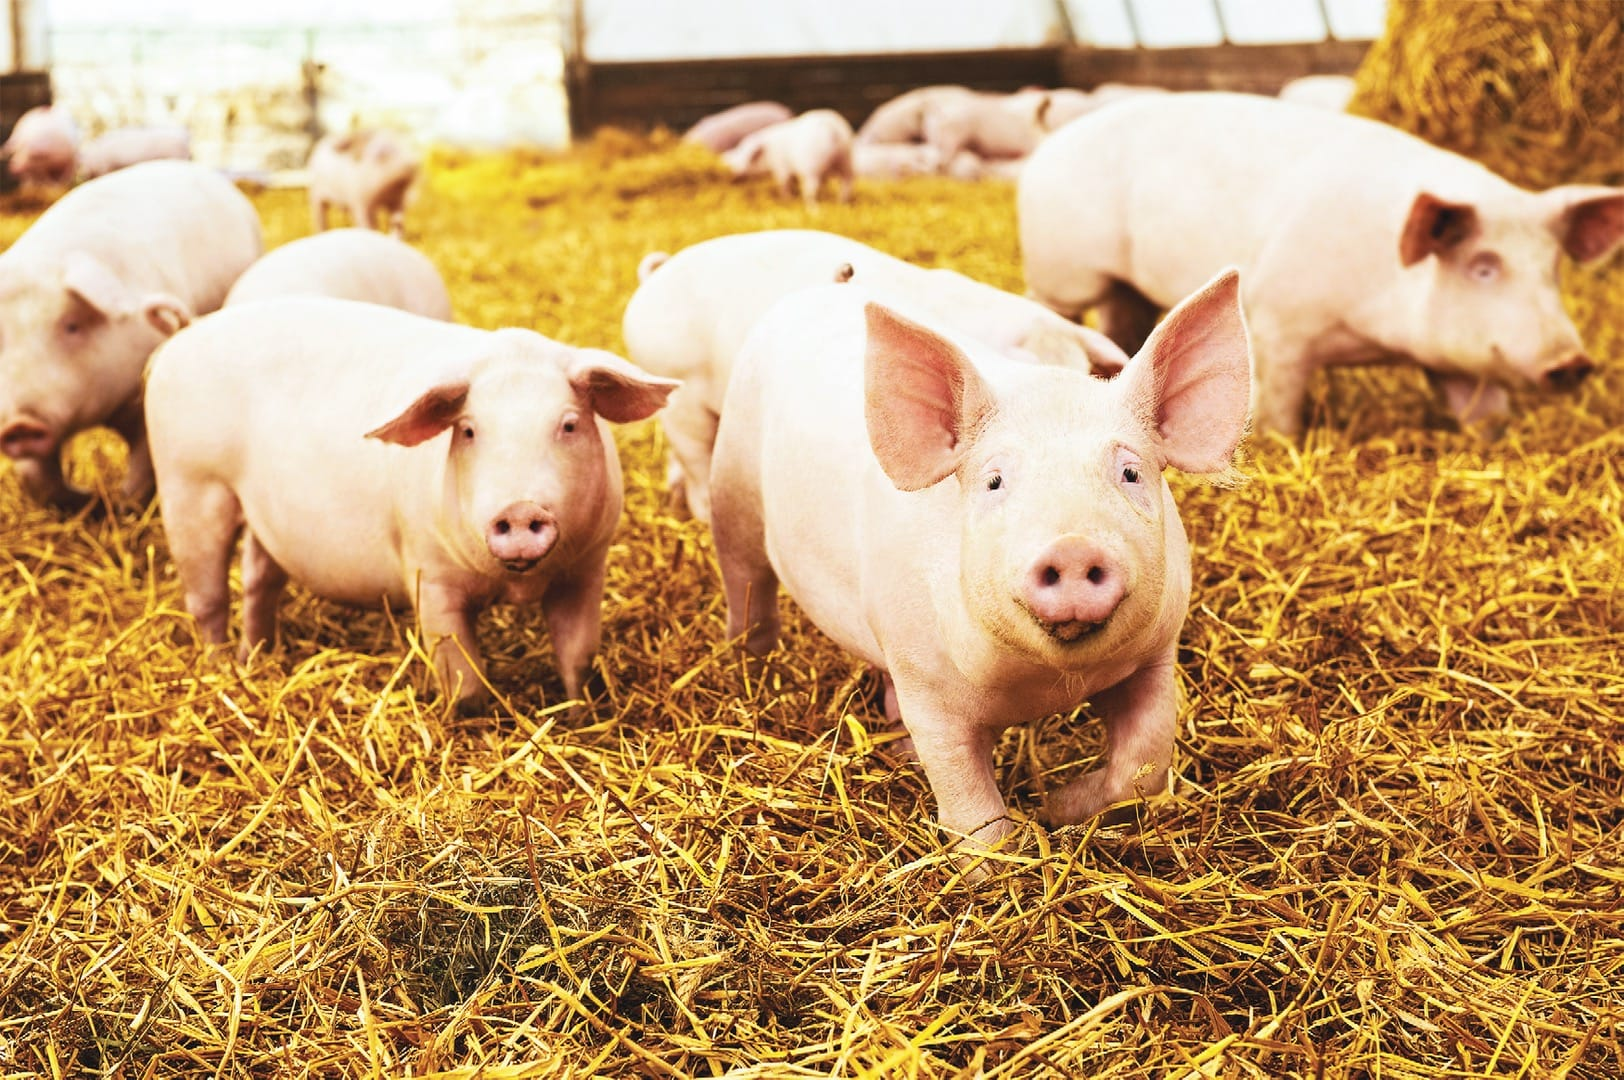 herd of young piglet on hay and straw at pig breeding farm